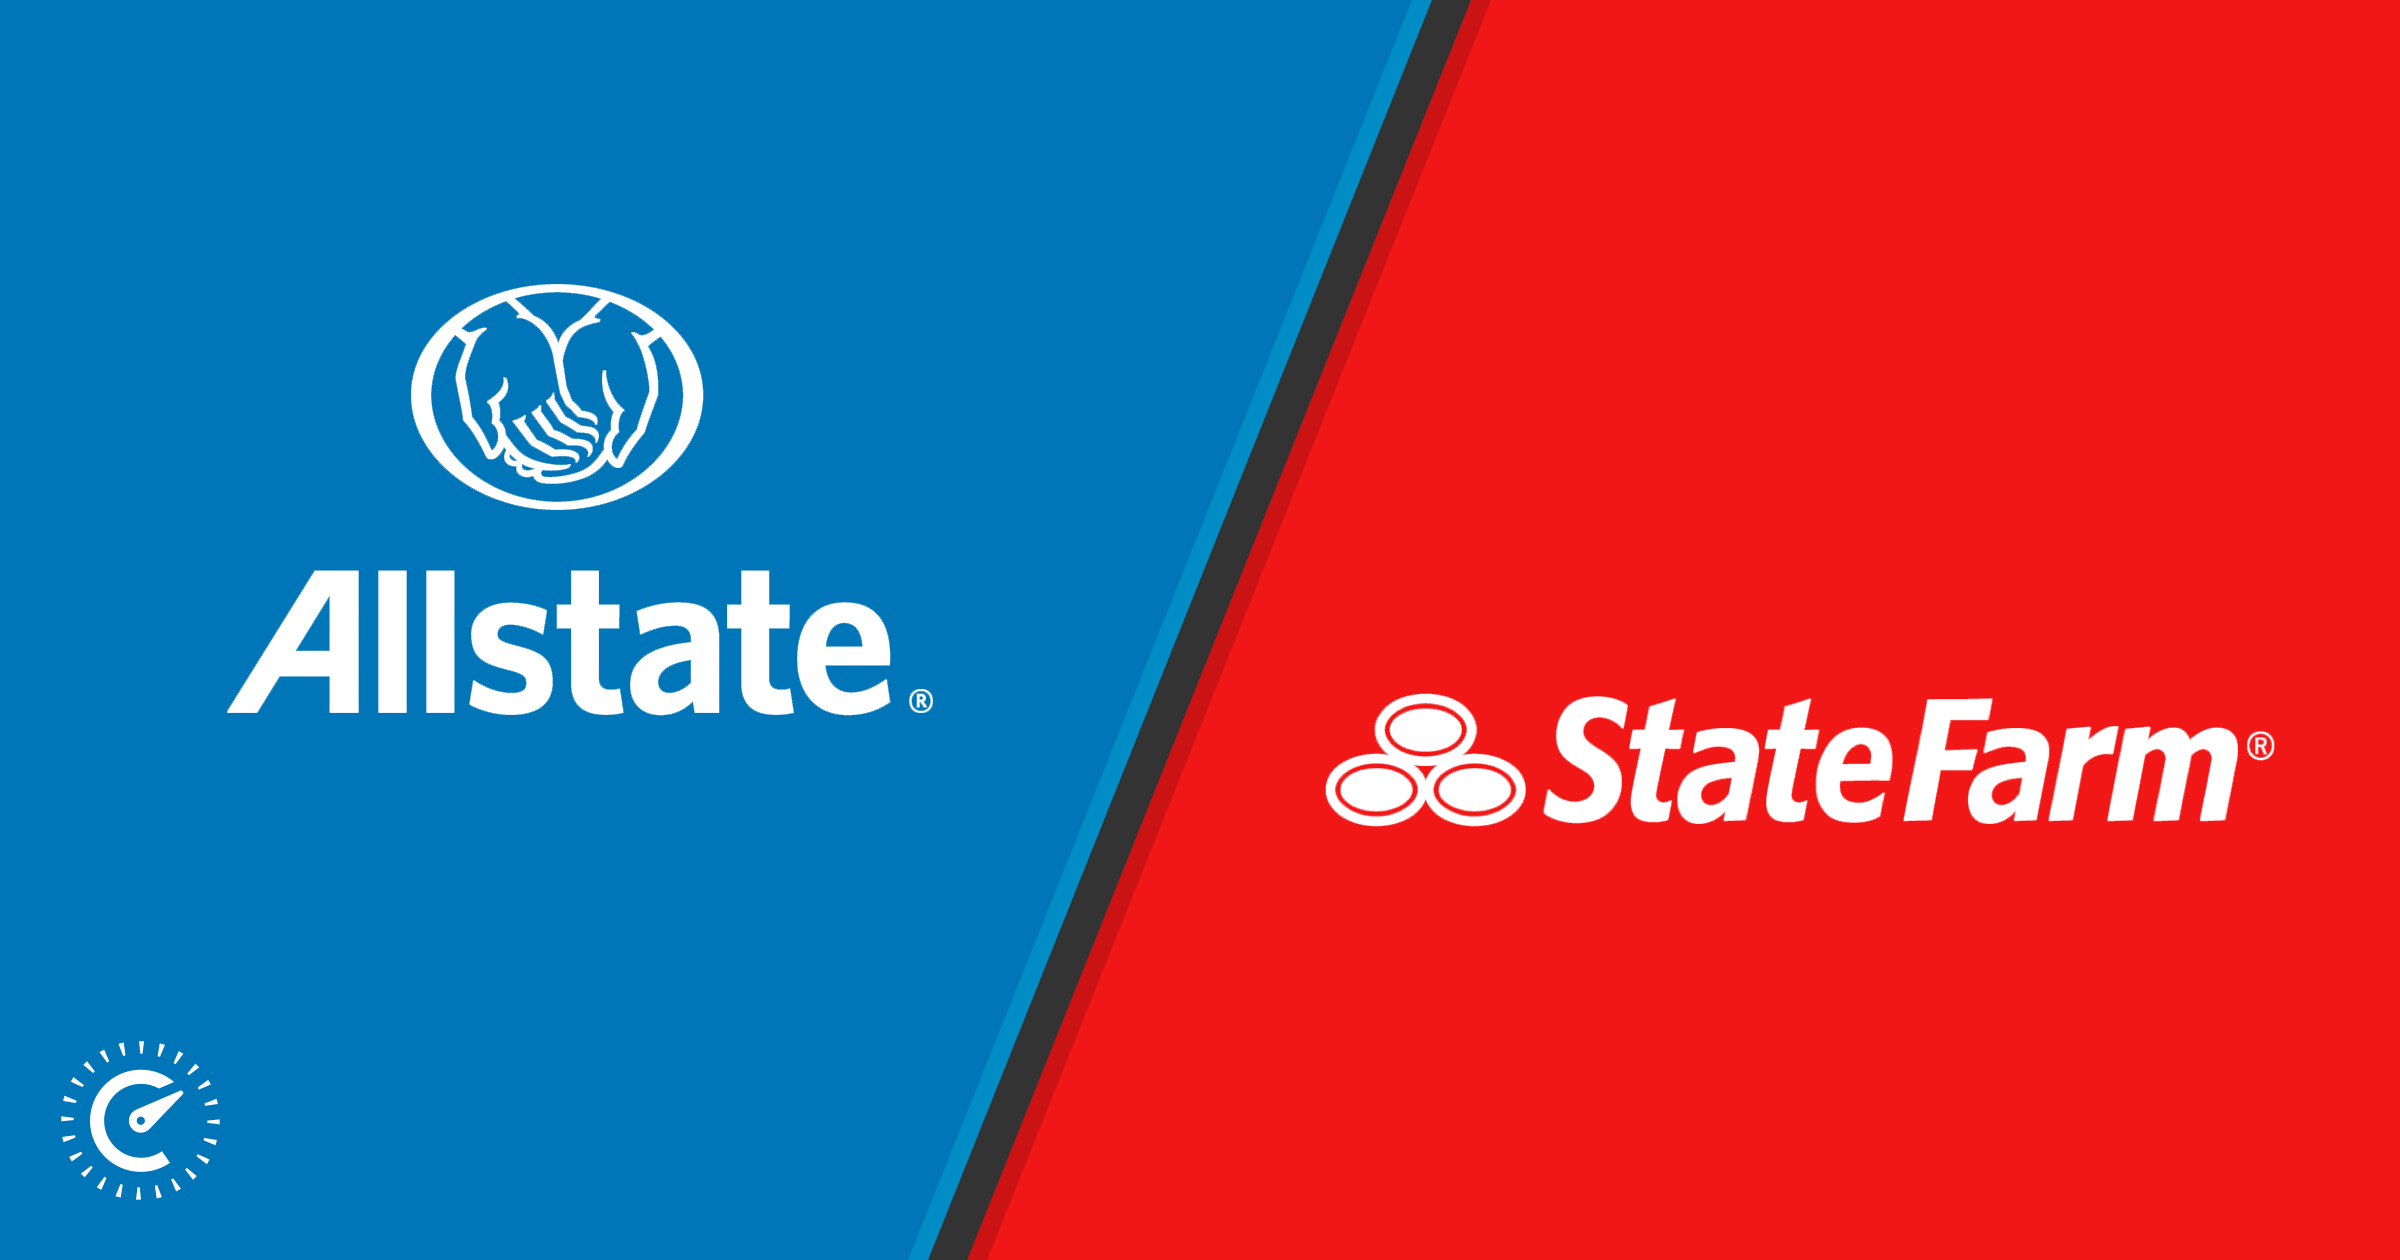 Allstate Vs State Farm Consumer Ratings And Rates Clearsurance